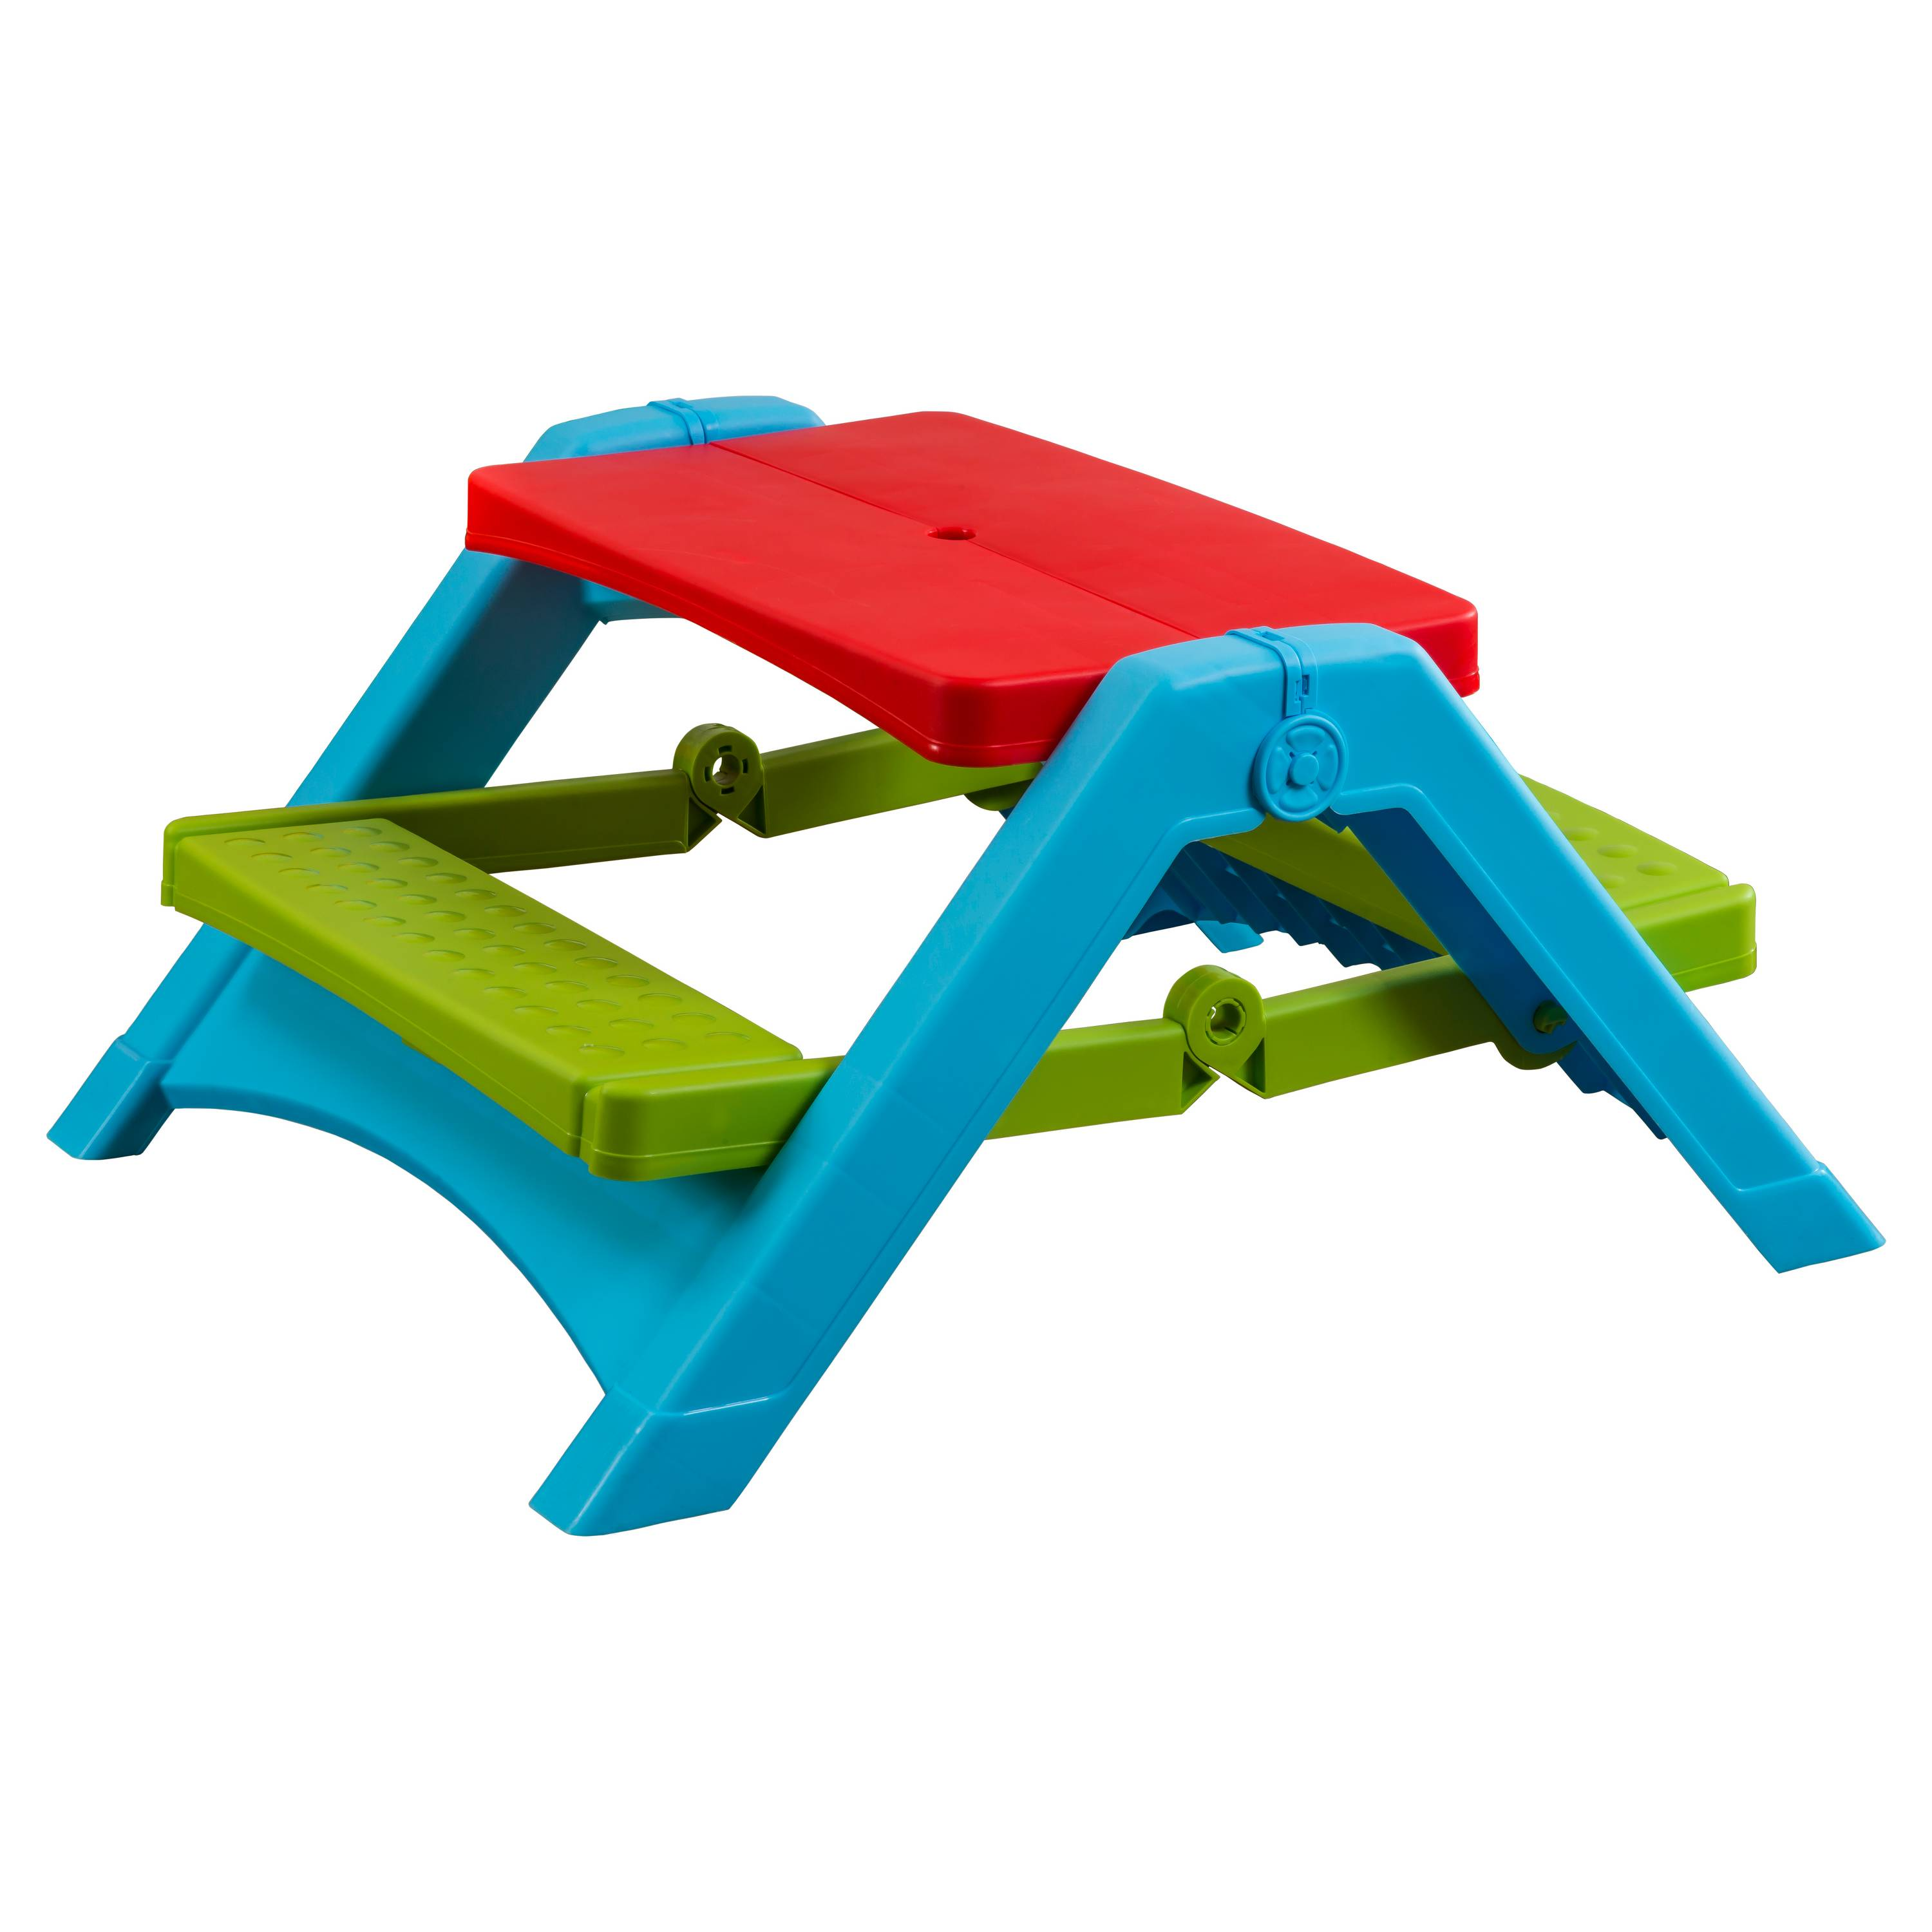 PalPlay Children's Foldable Picnic Table, Red/Blue/Green